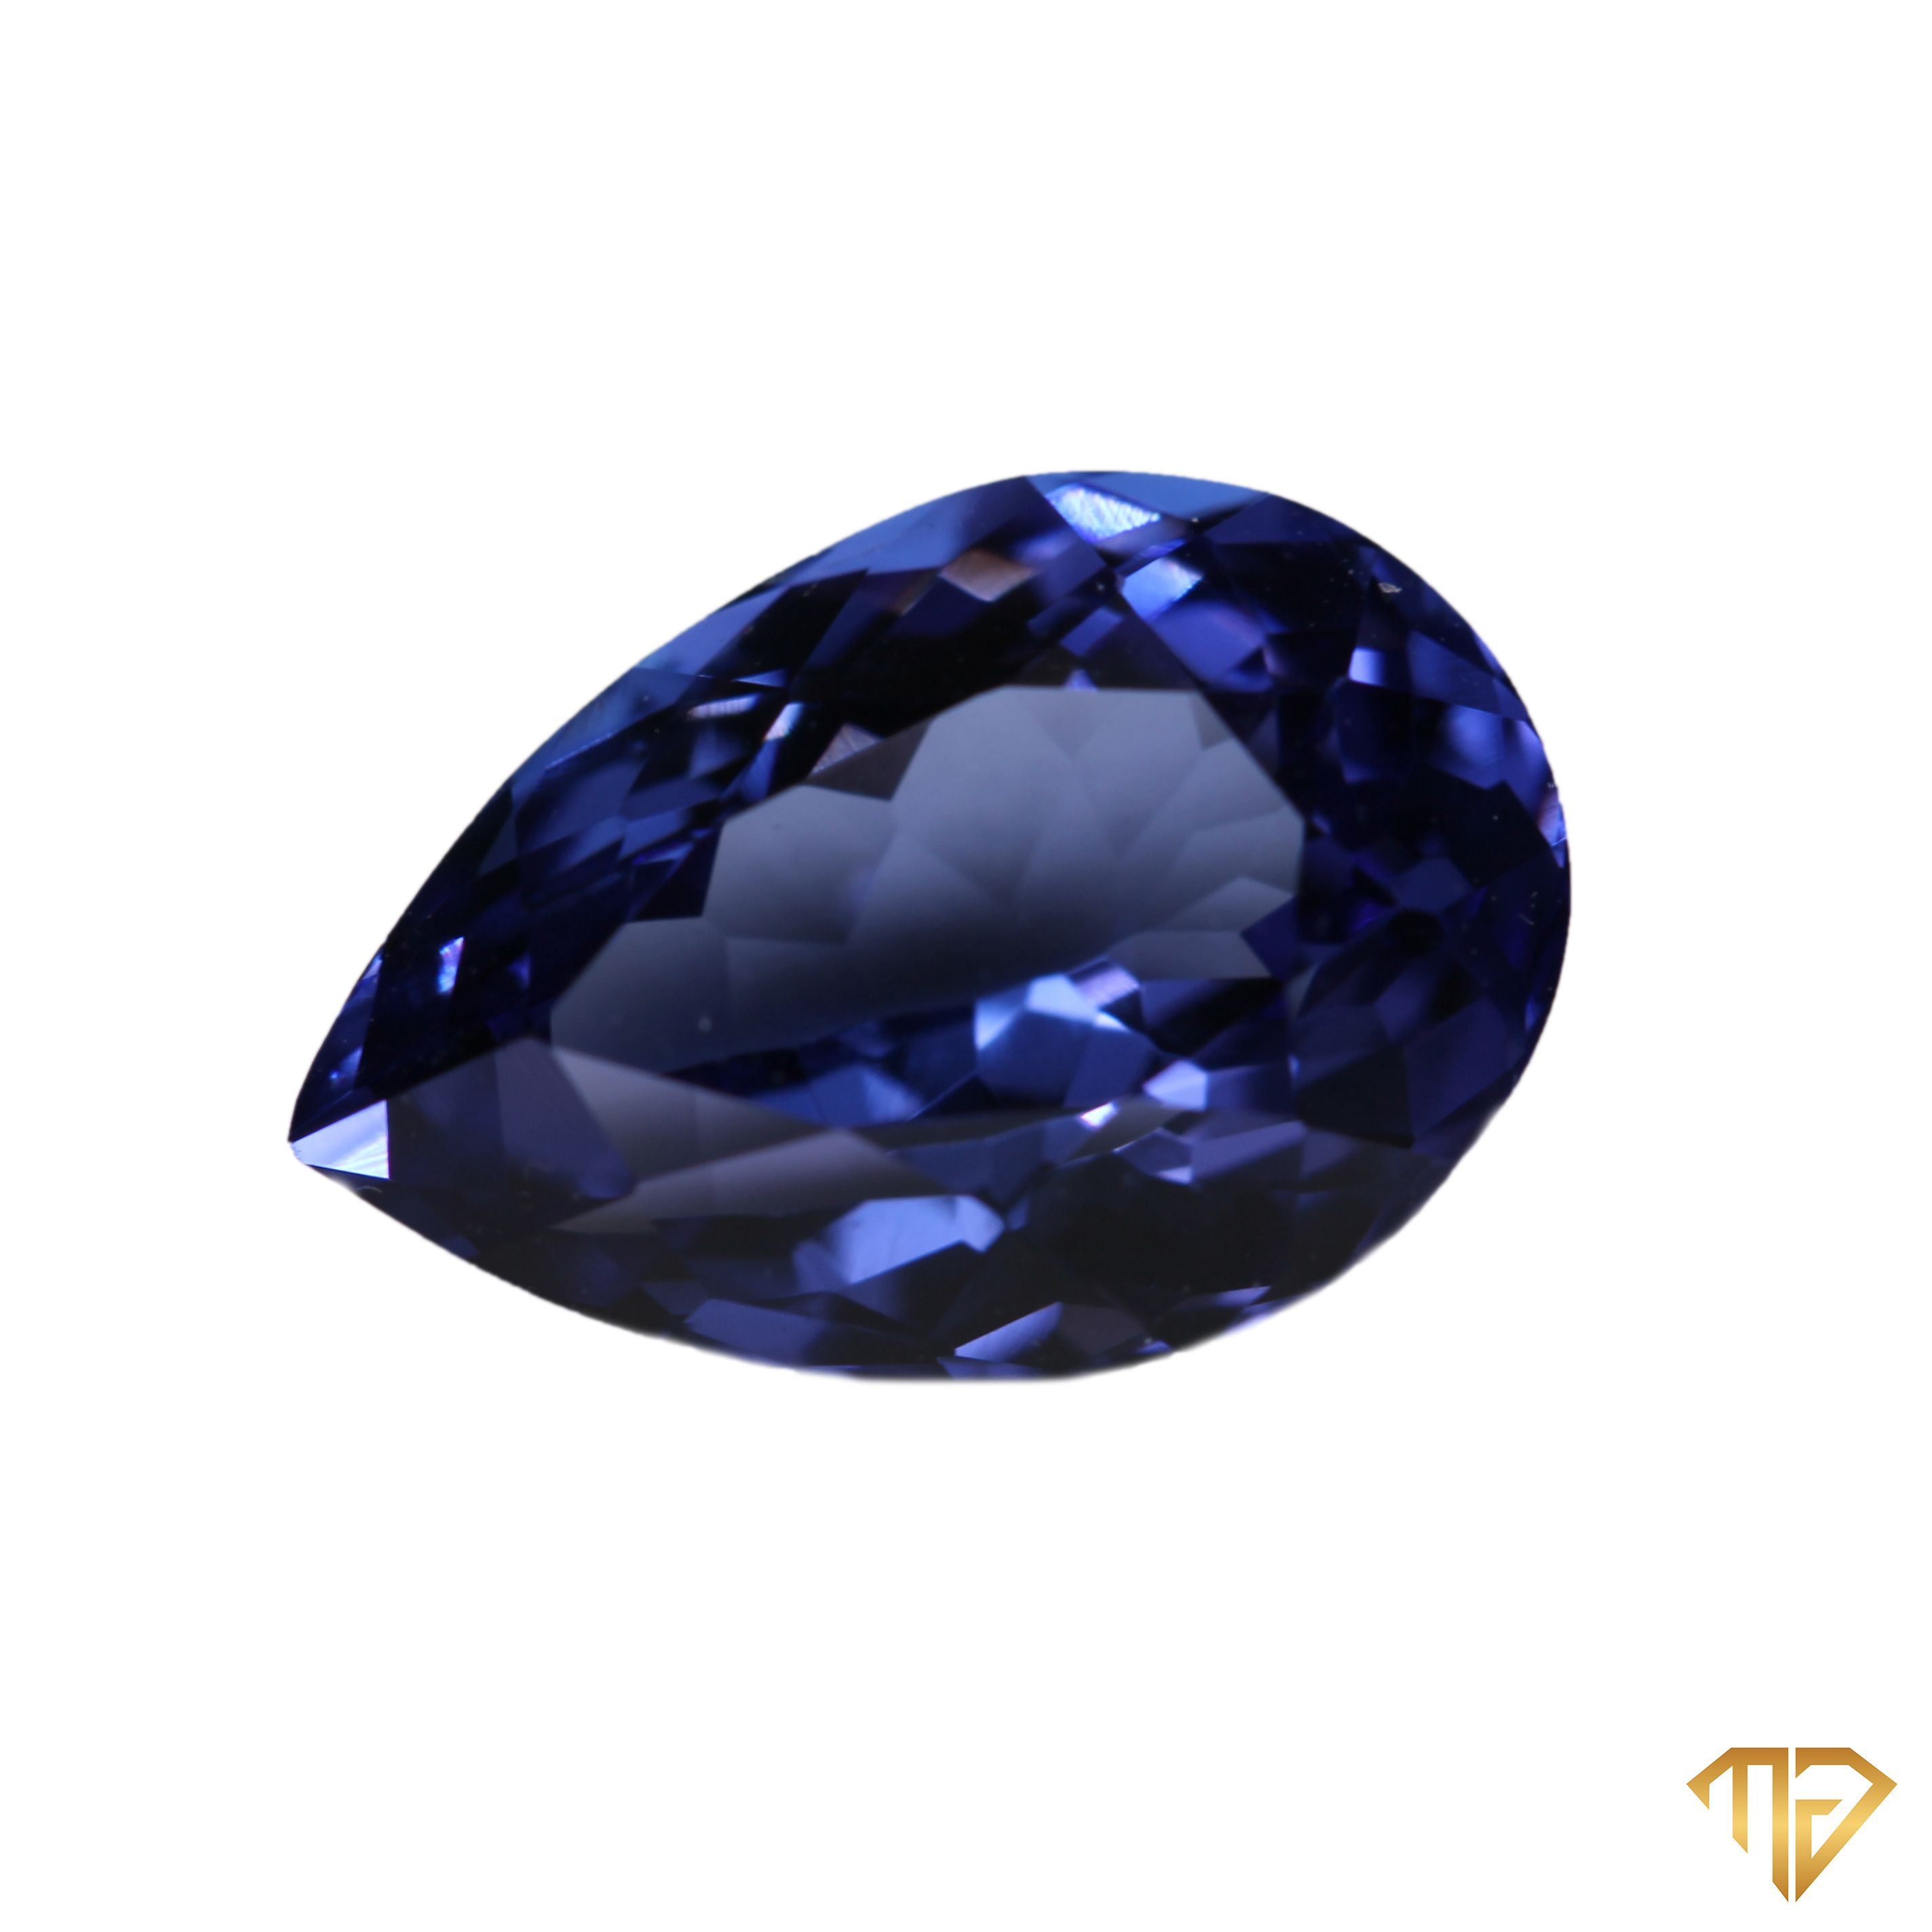 astrology cts natural sale planetary buy gemstone tanzanite gems stone for code vedic